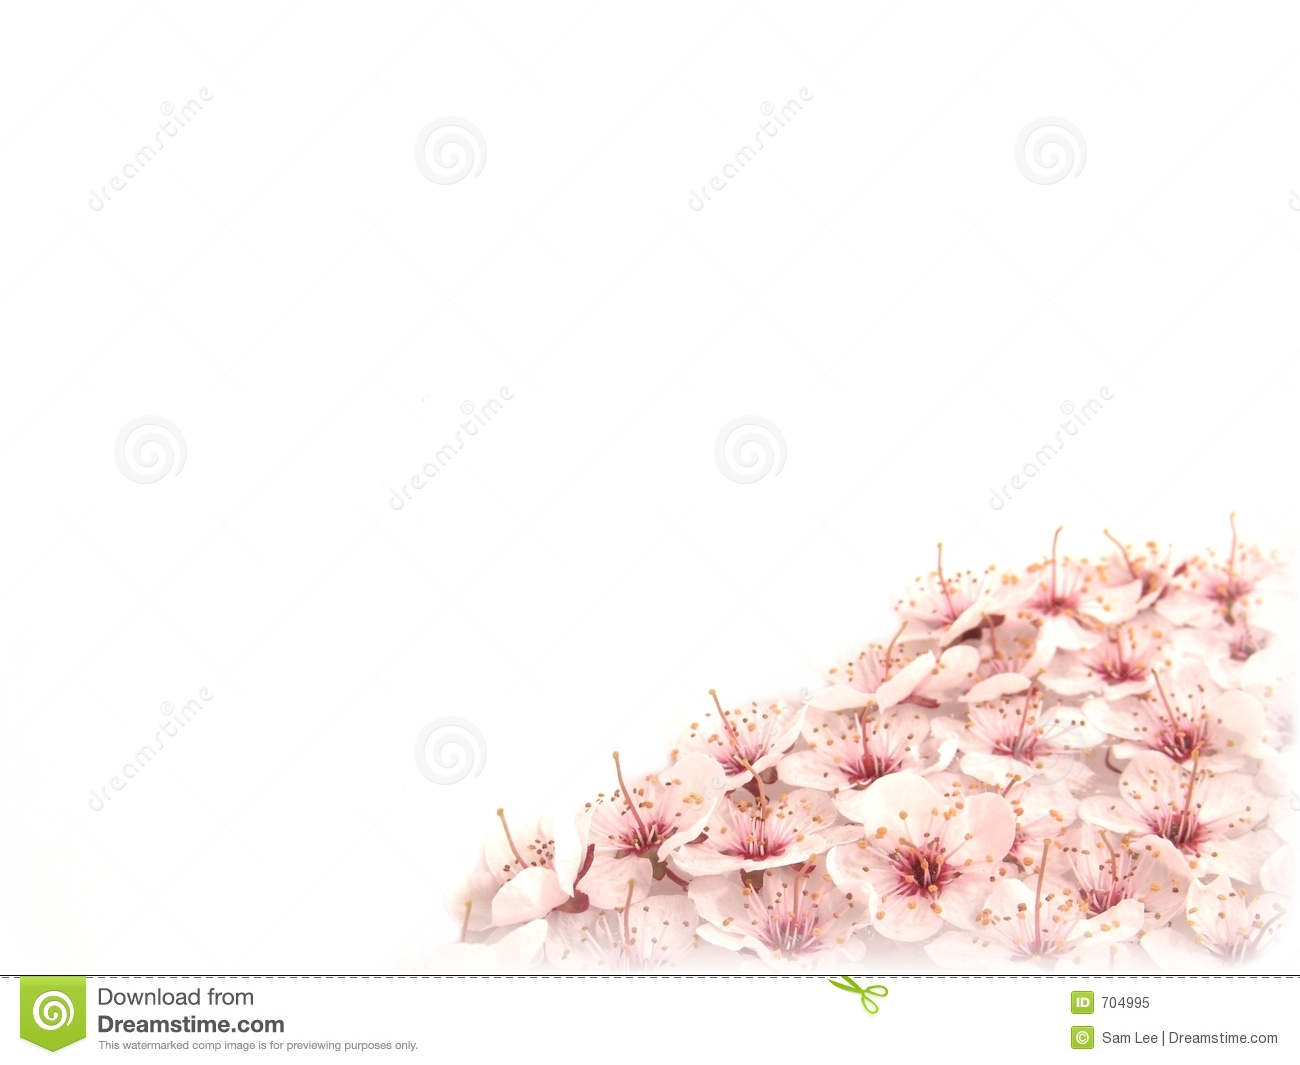 plum flowers template i stock image image of pink hope 704995